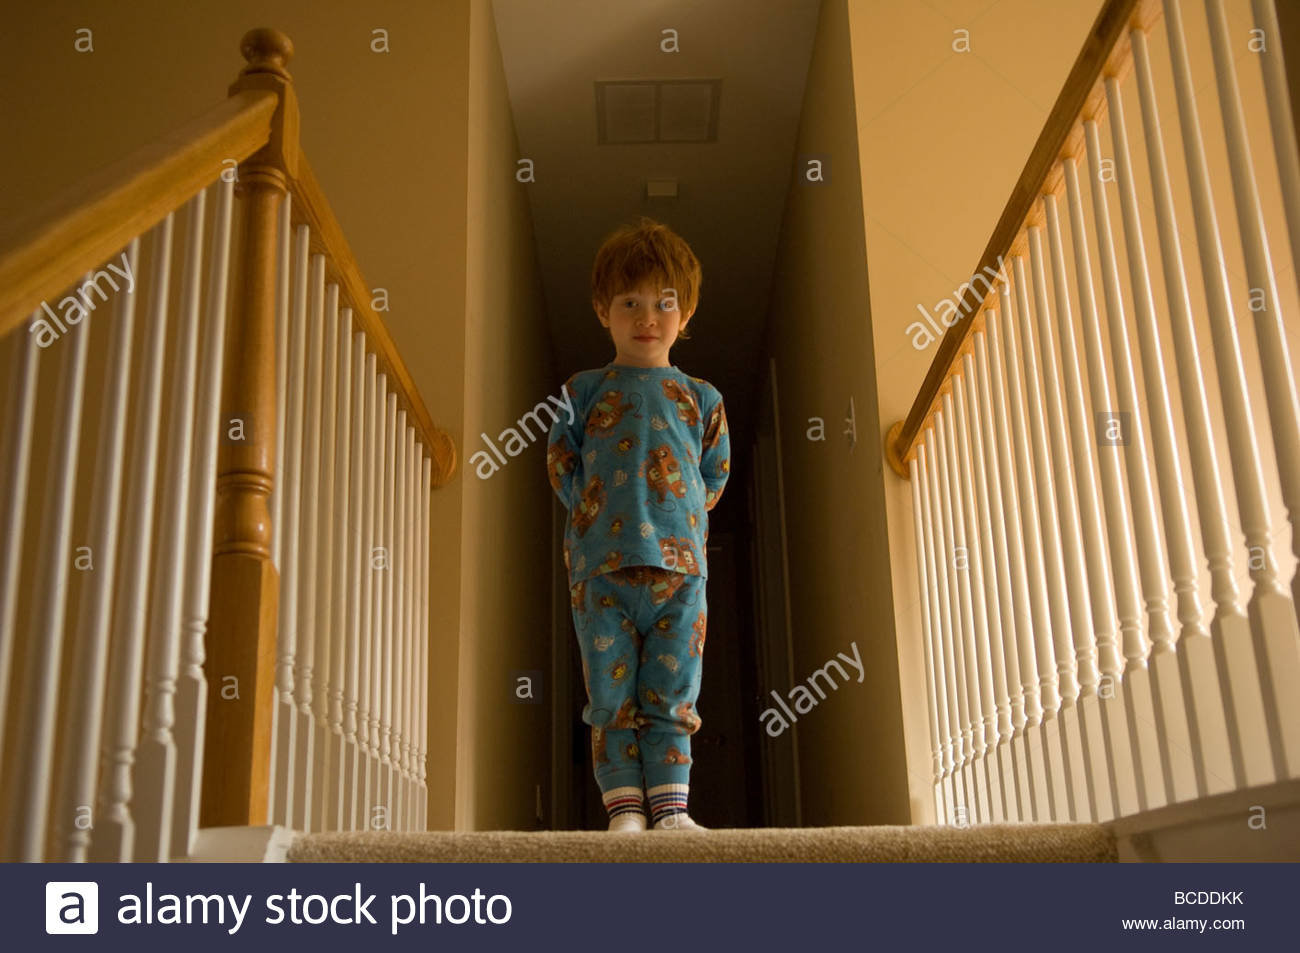 A 3-year-old boy plays on the stairs of his home. - Stock Image